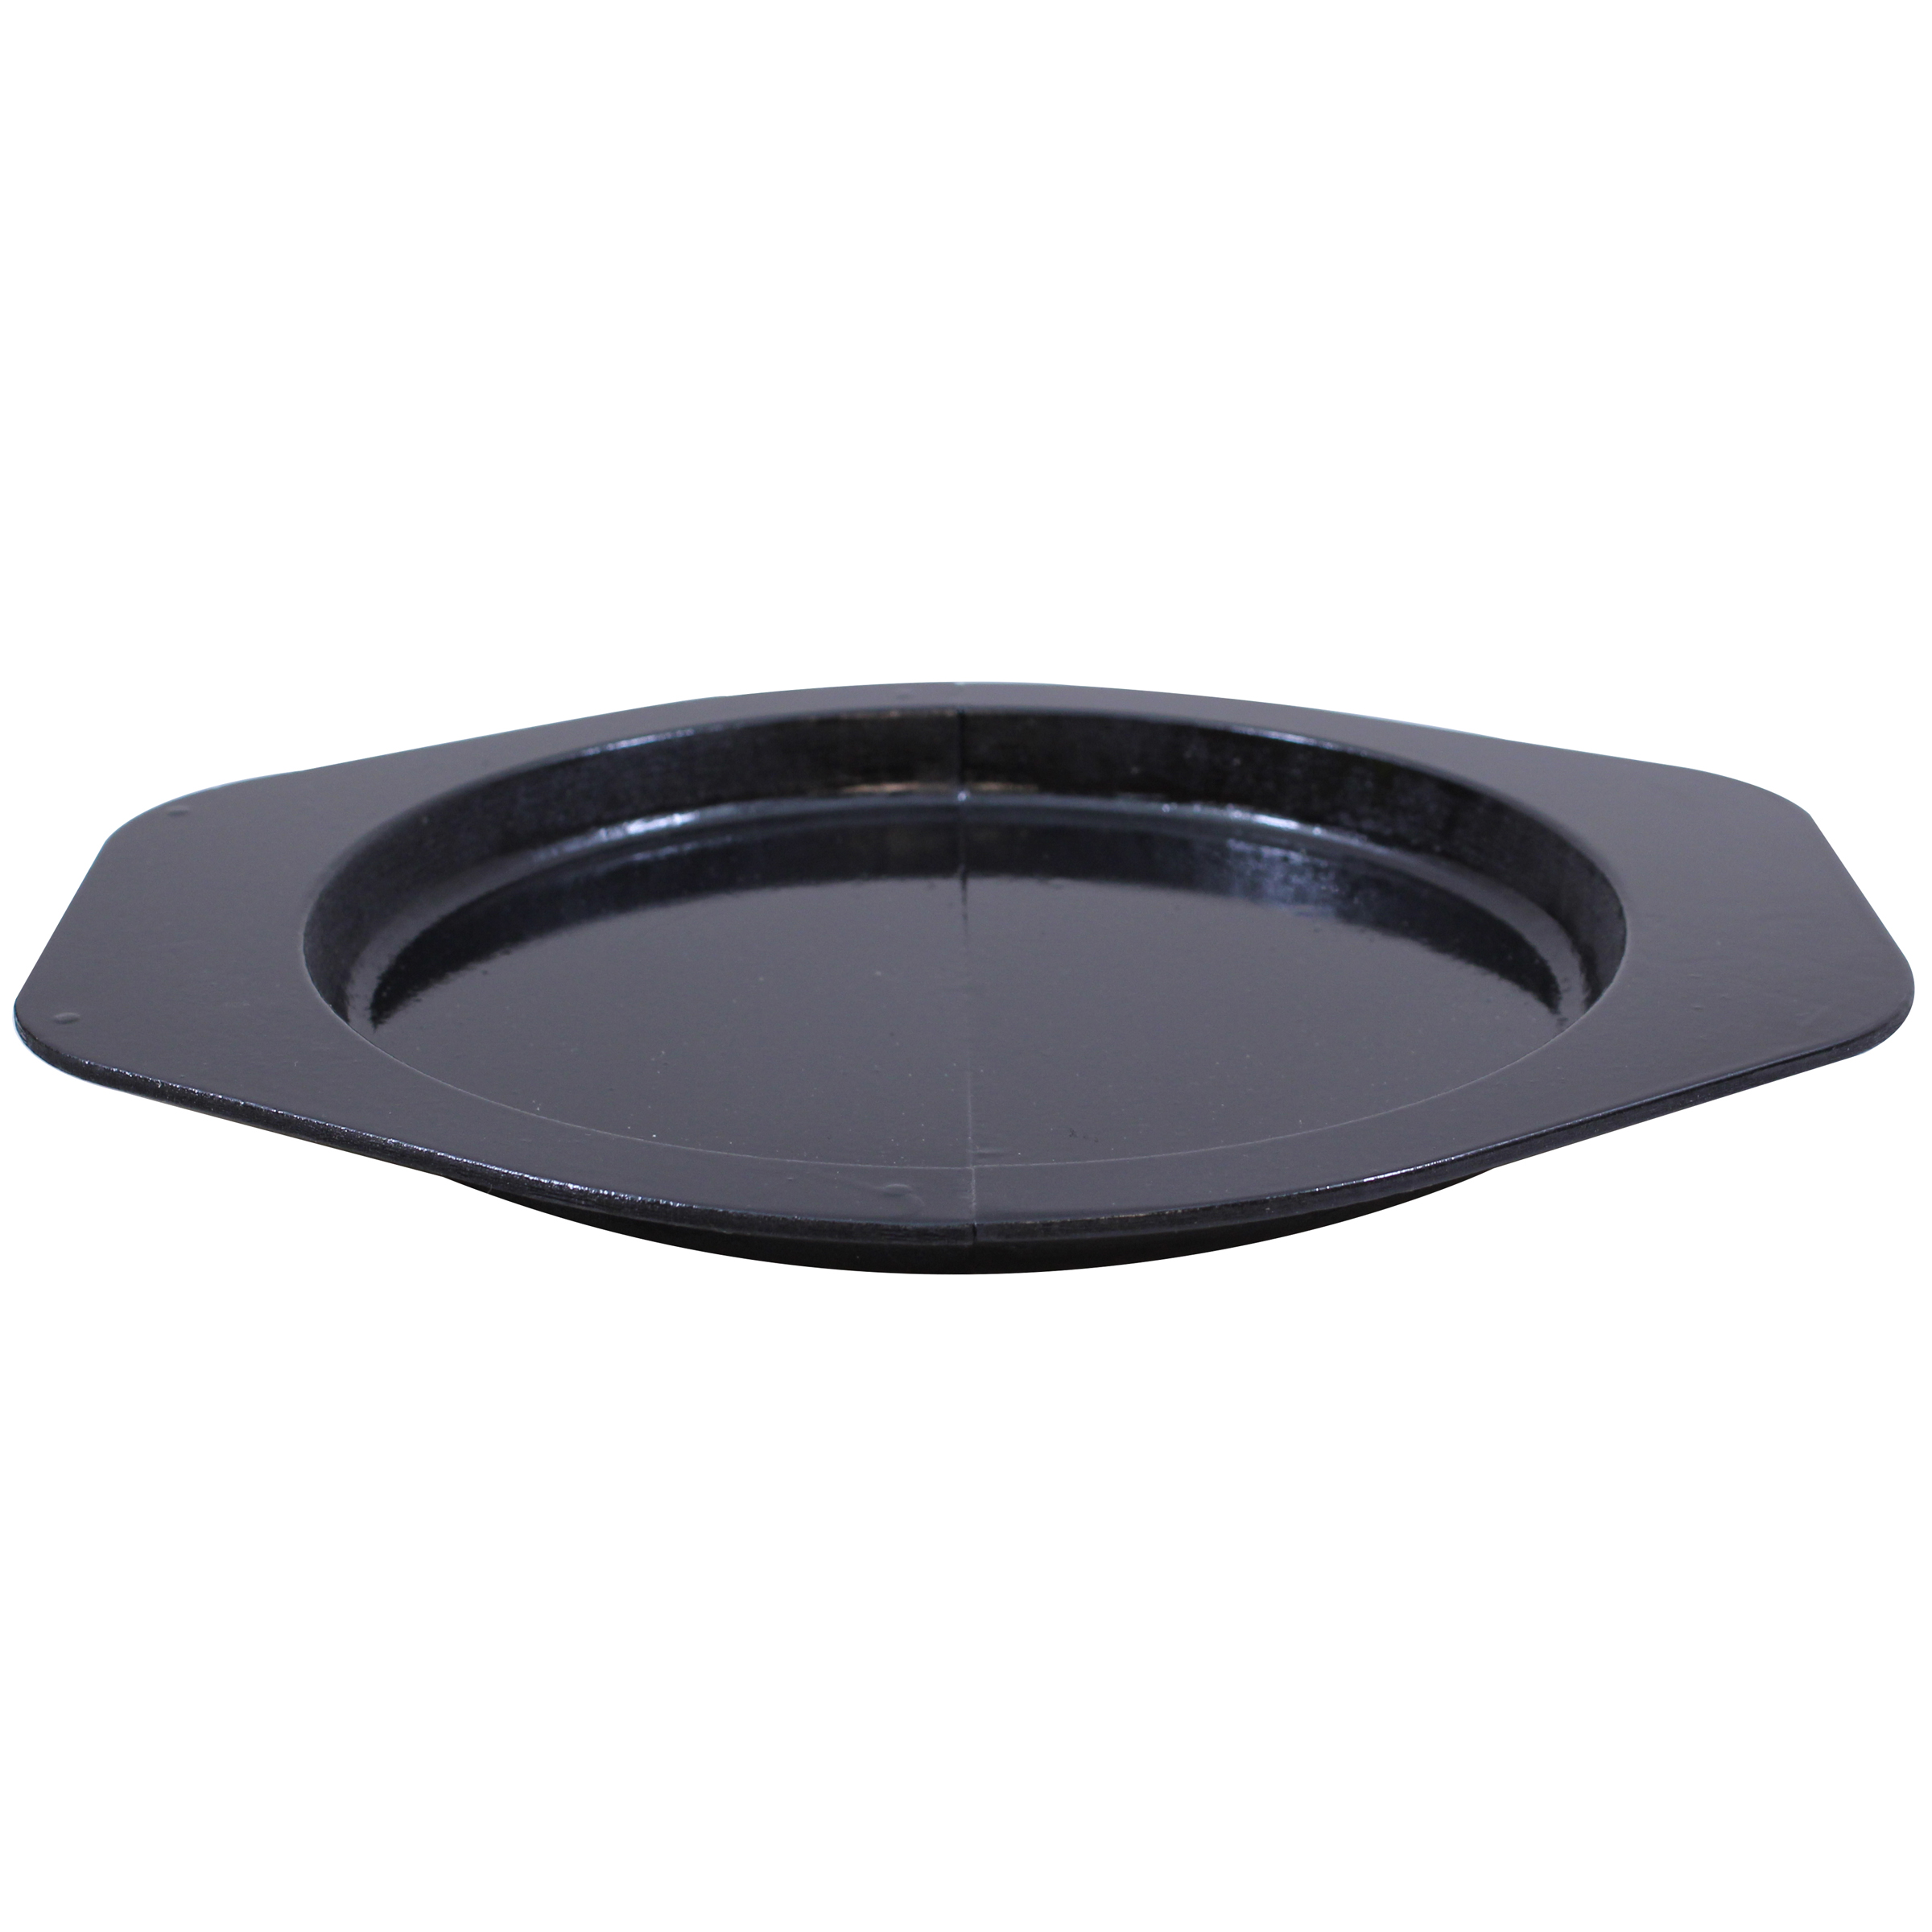 TableCraft Products UCW03 sizzle thermal platter underliner